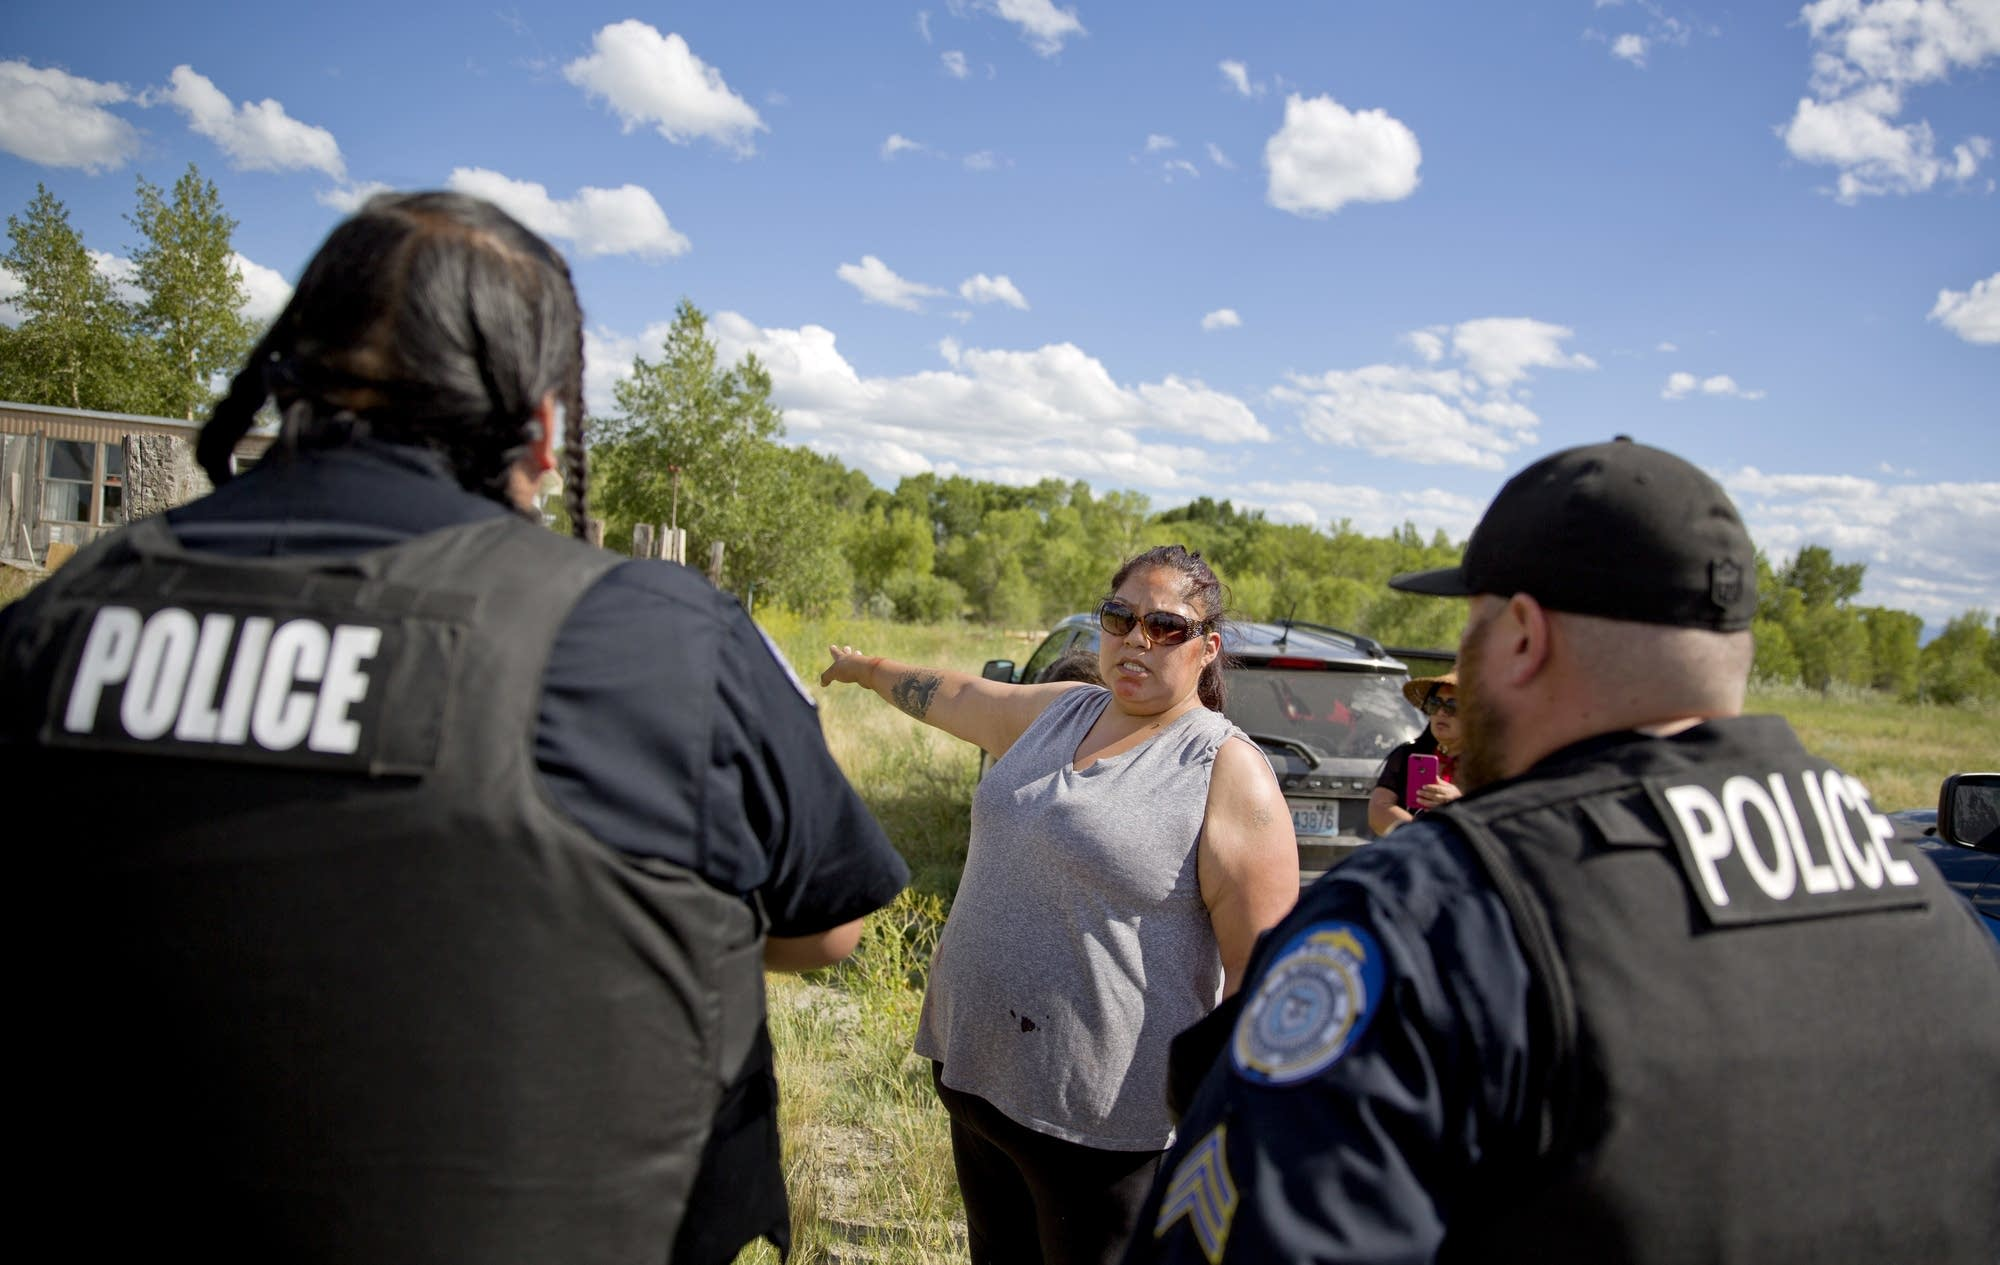 Lissa Loring points Blackfeet law enforcement officers to a trailer.